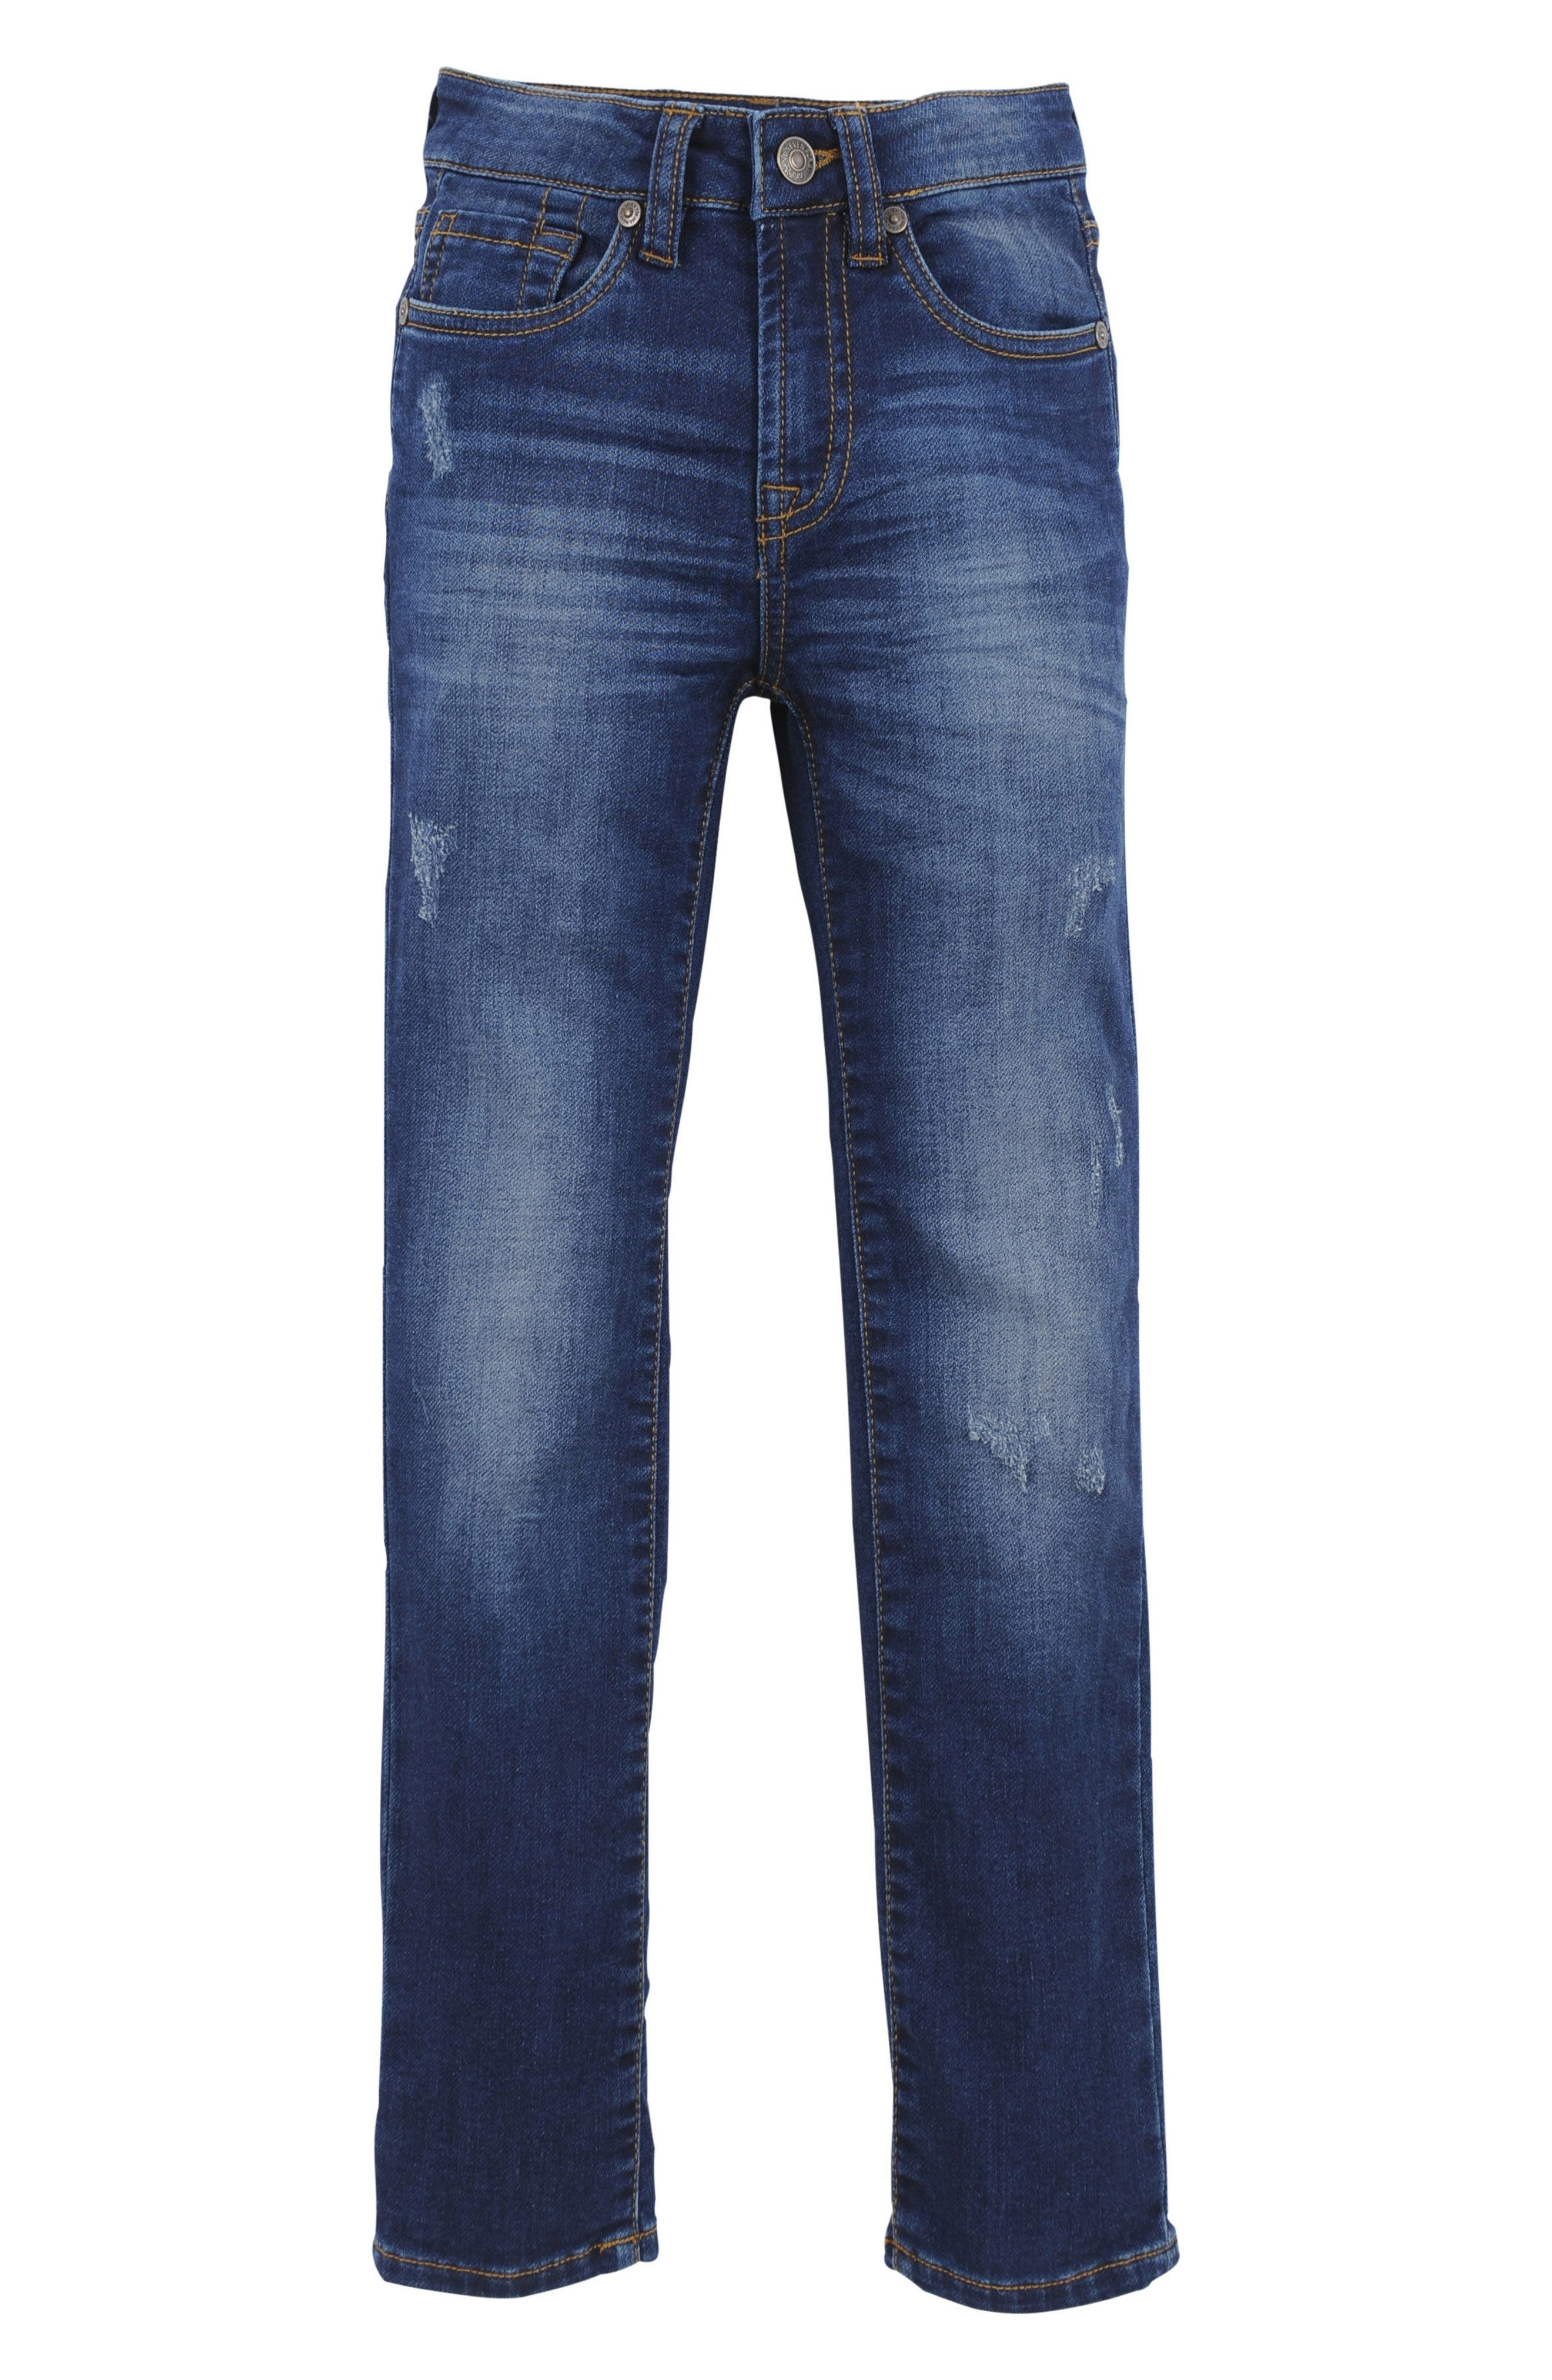 Slimmy Luxe Sport Jeans,                             Main thumbnail 1, color,                             453